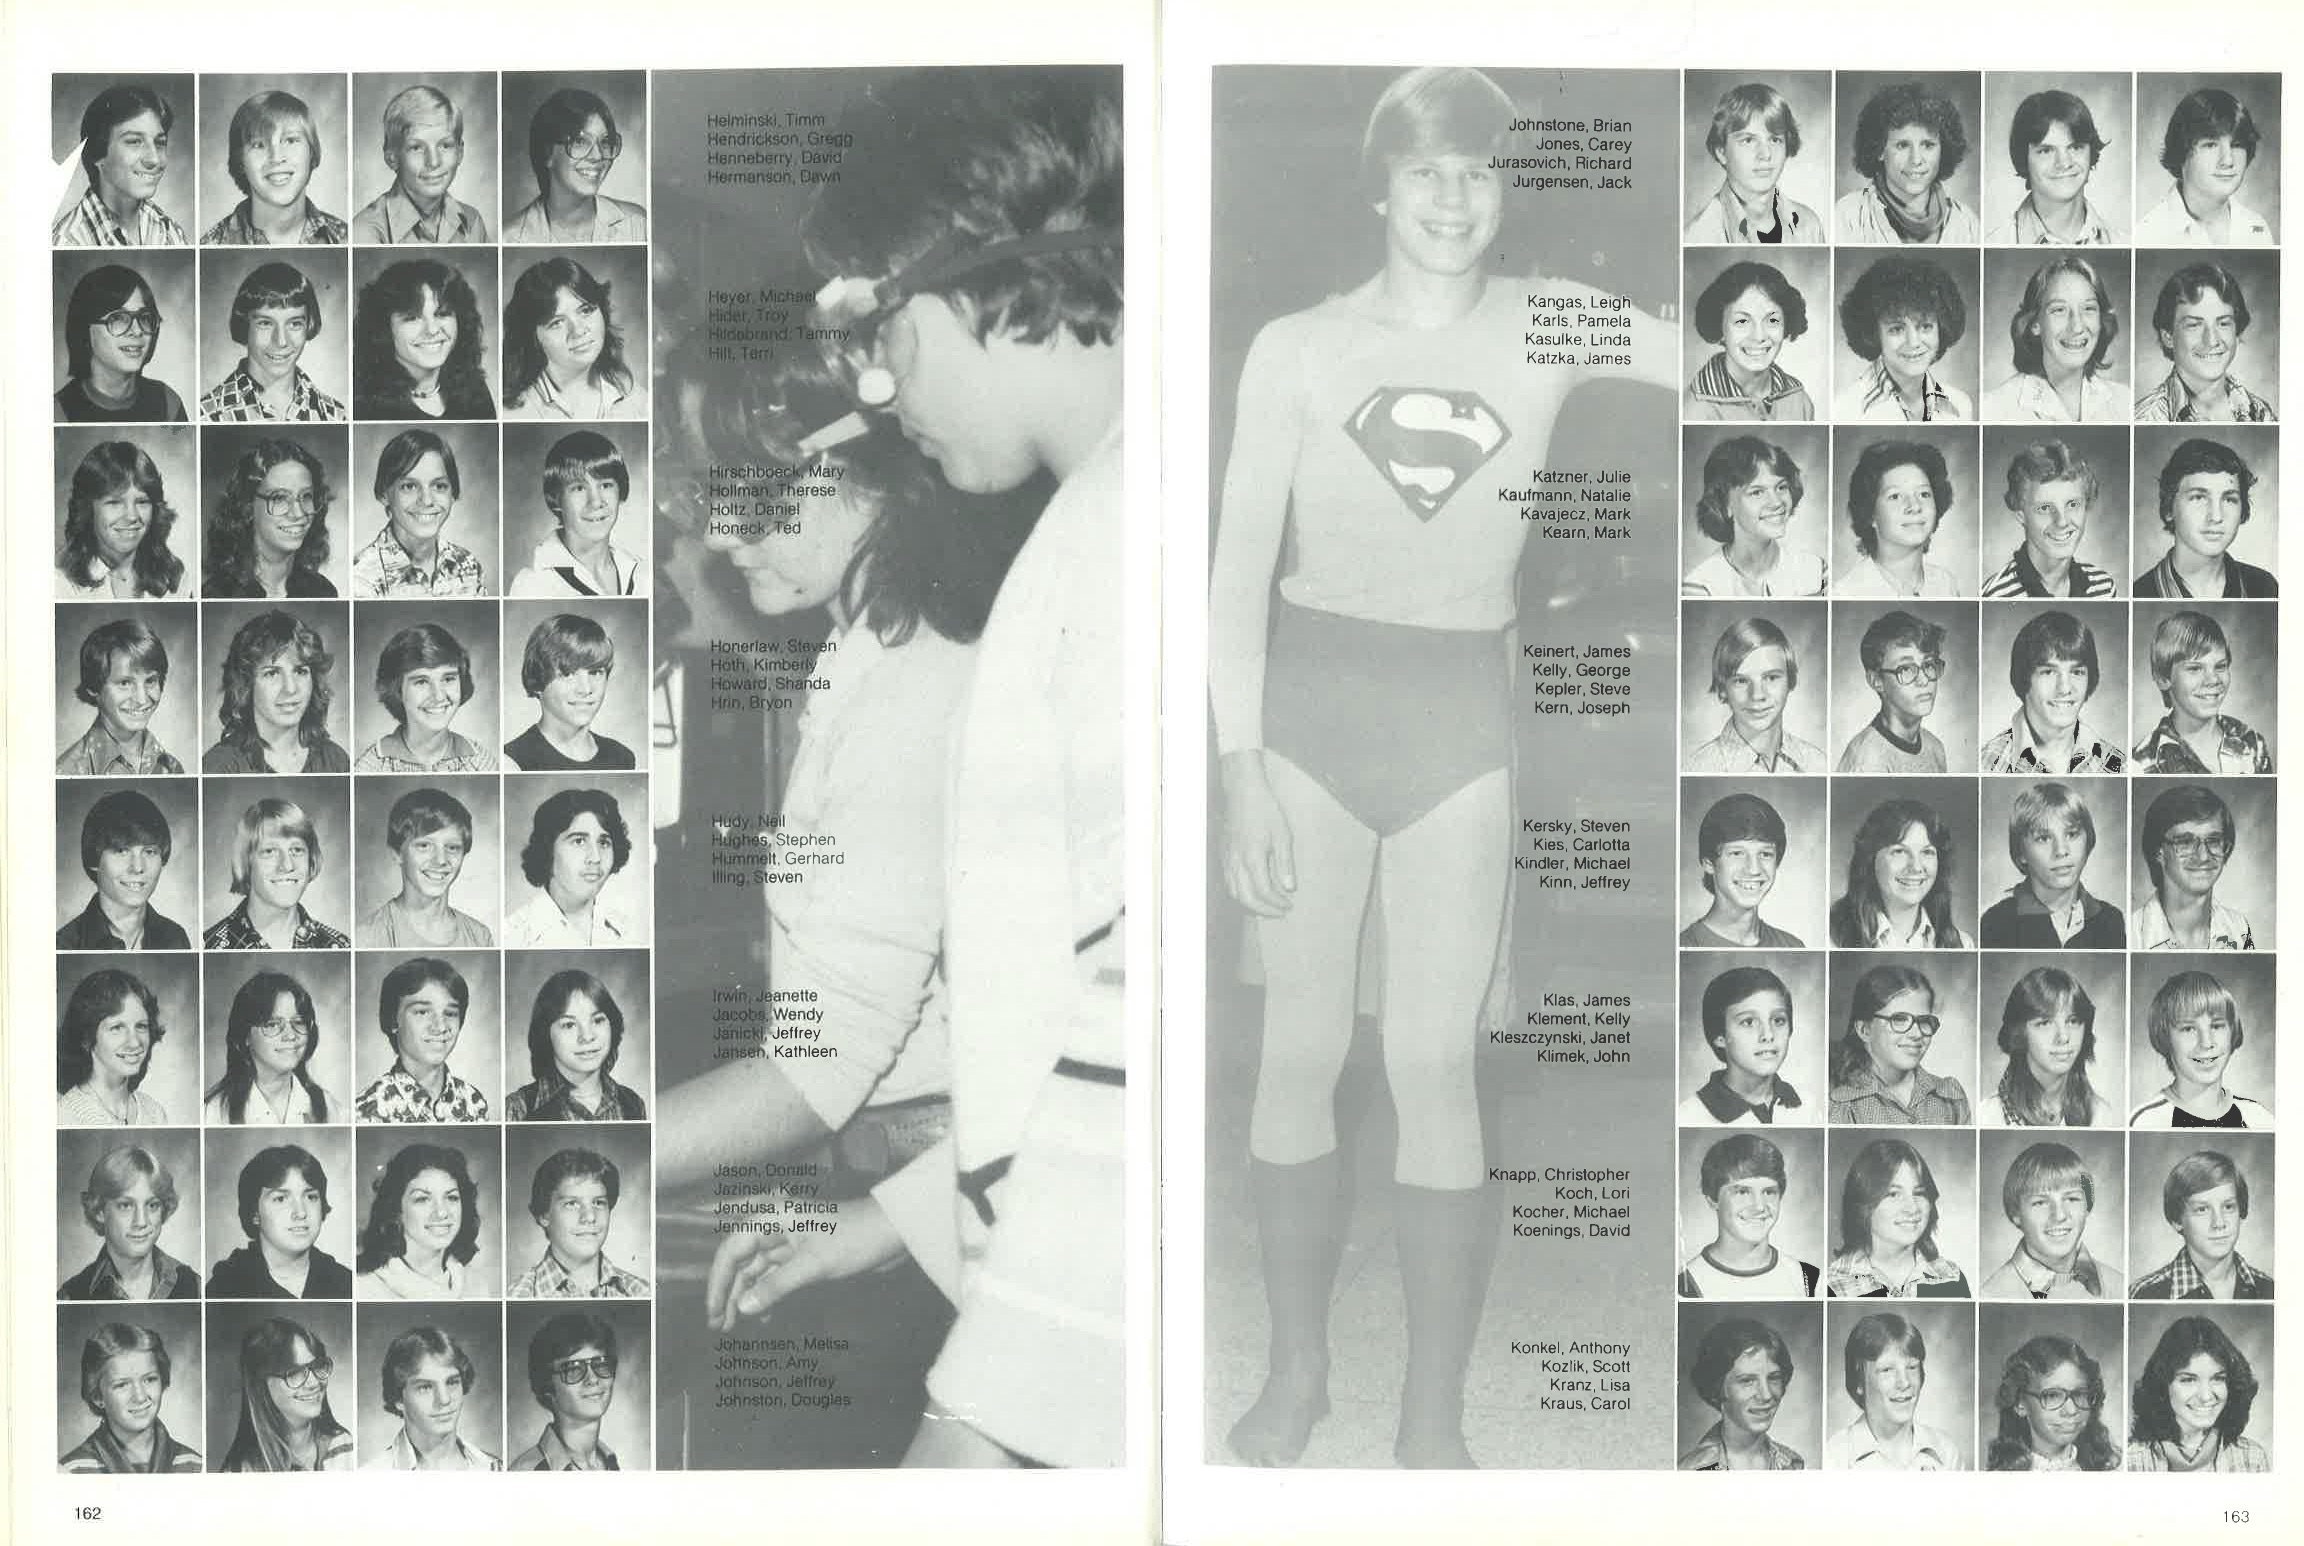 1979_Yearbook_154.jpg